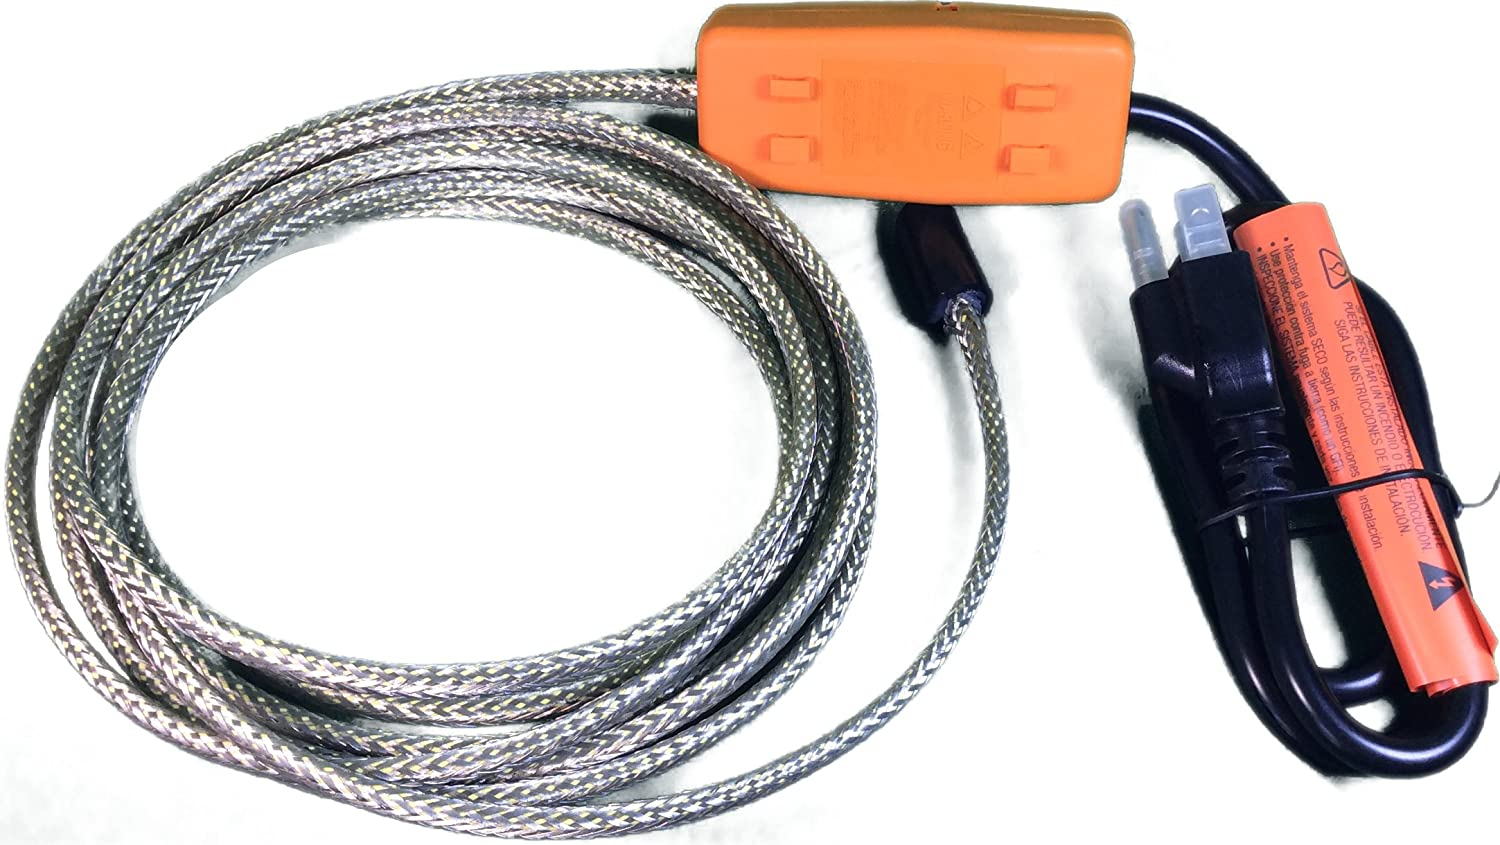 Heat Tape Easy Heat Freeze Protection Cable Waterline Heater Pre-cut to 50 Foot includes Installed Plug Head